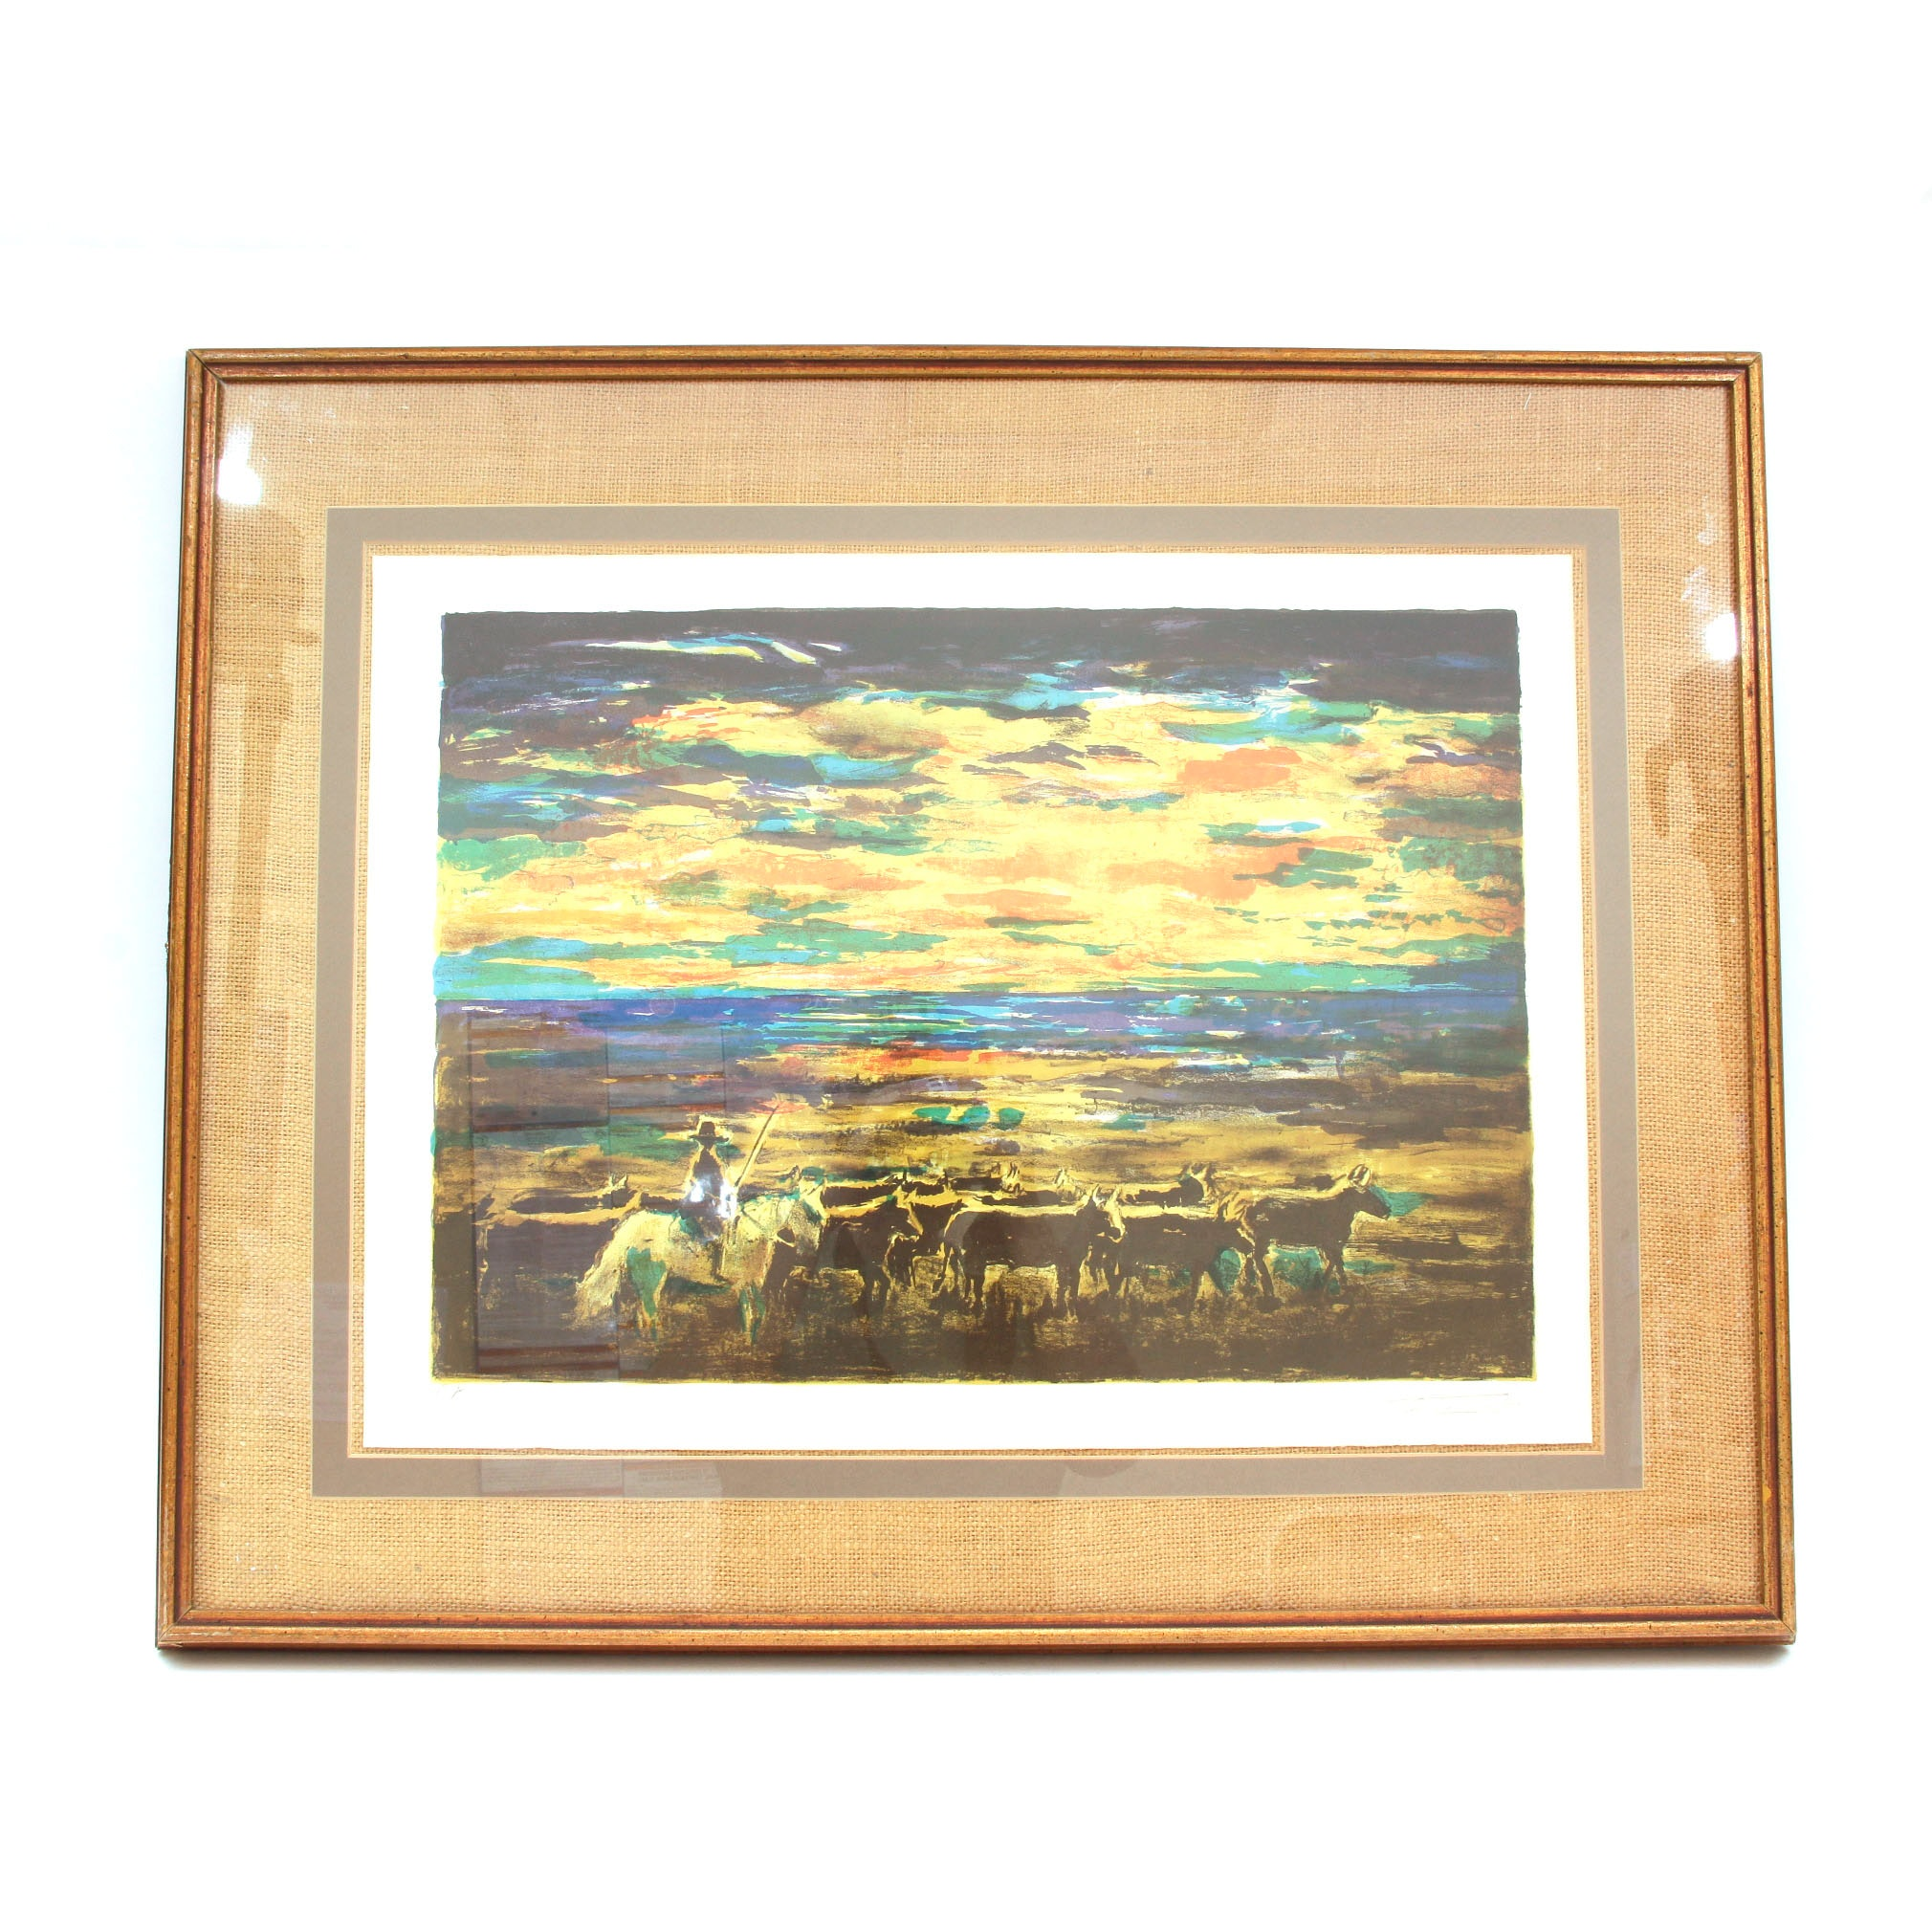 Signed Artists Proof Serigraph of a Cattle Drive and Sunset